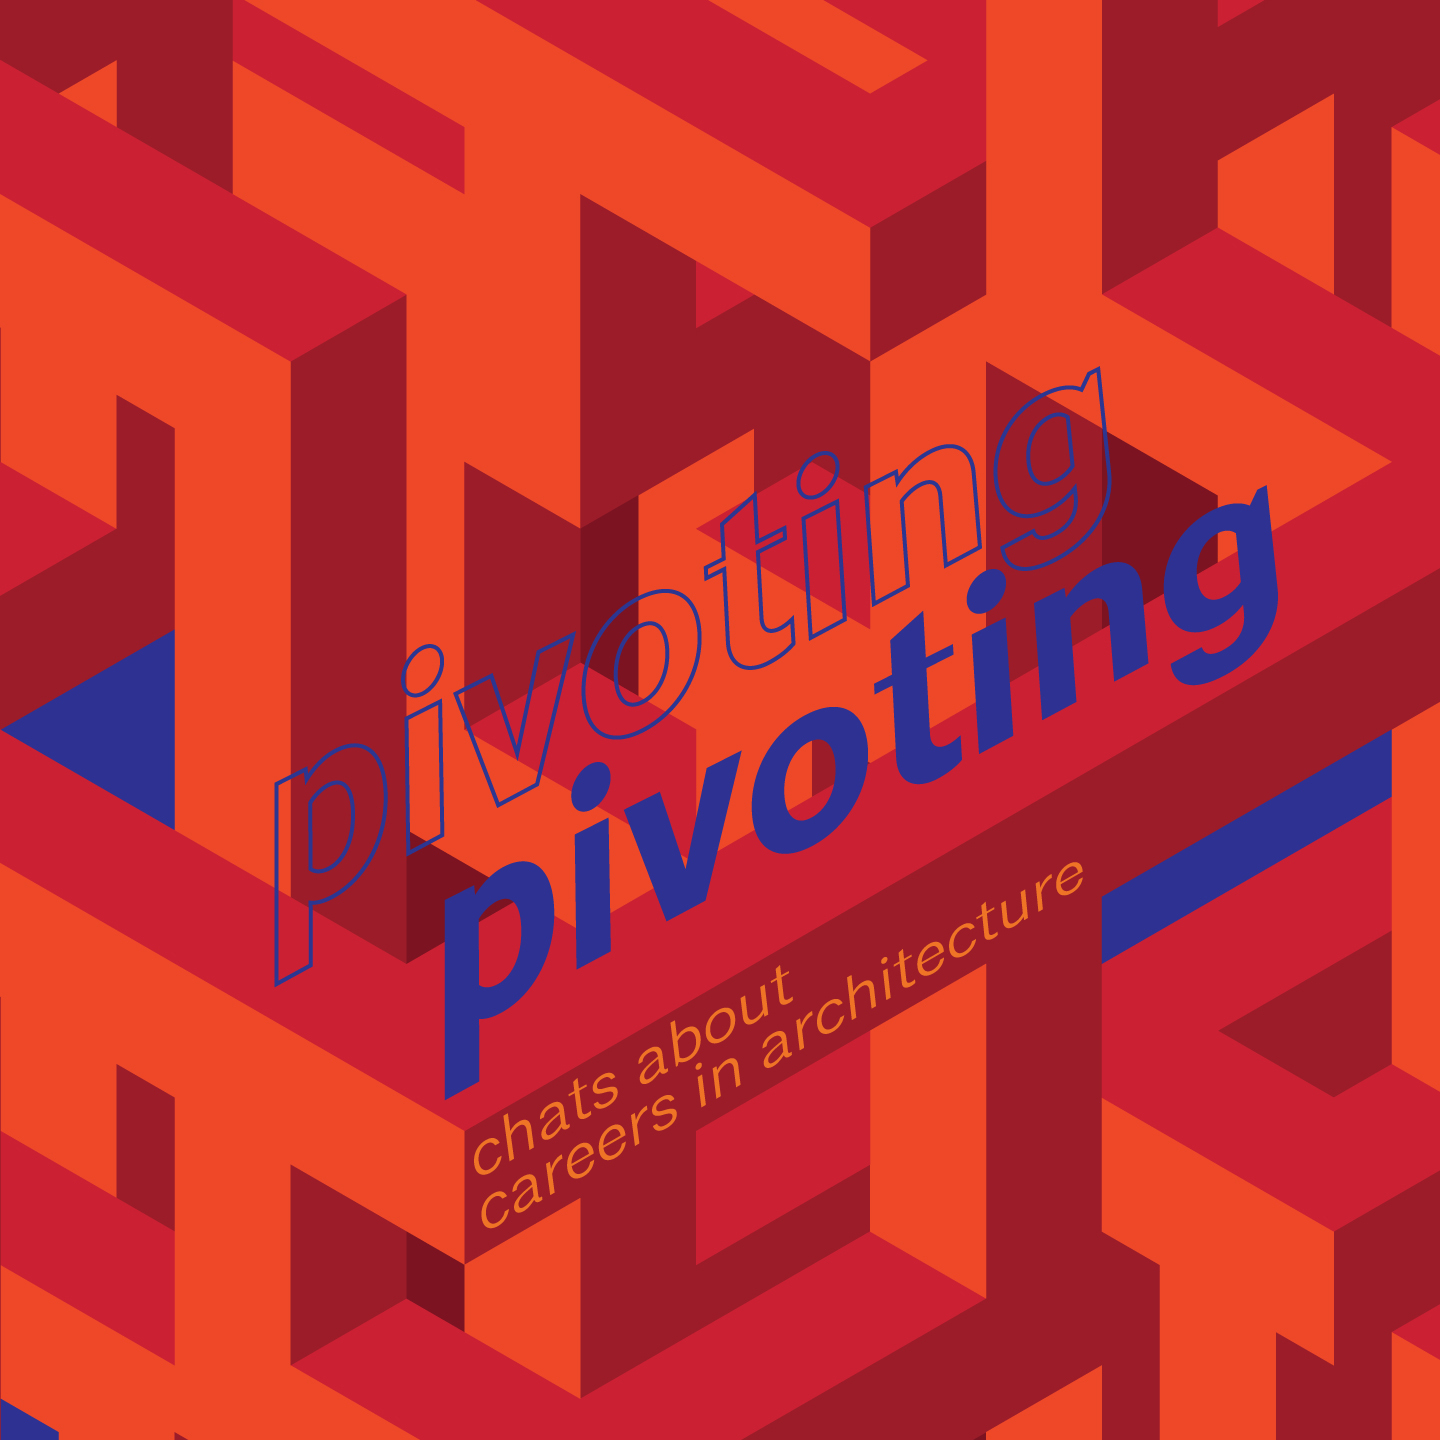 Pivoting: Chats About Careers in Architecture